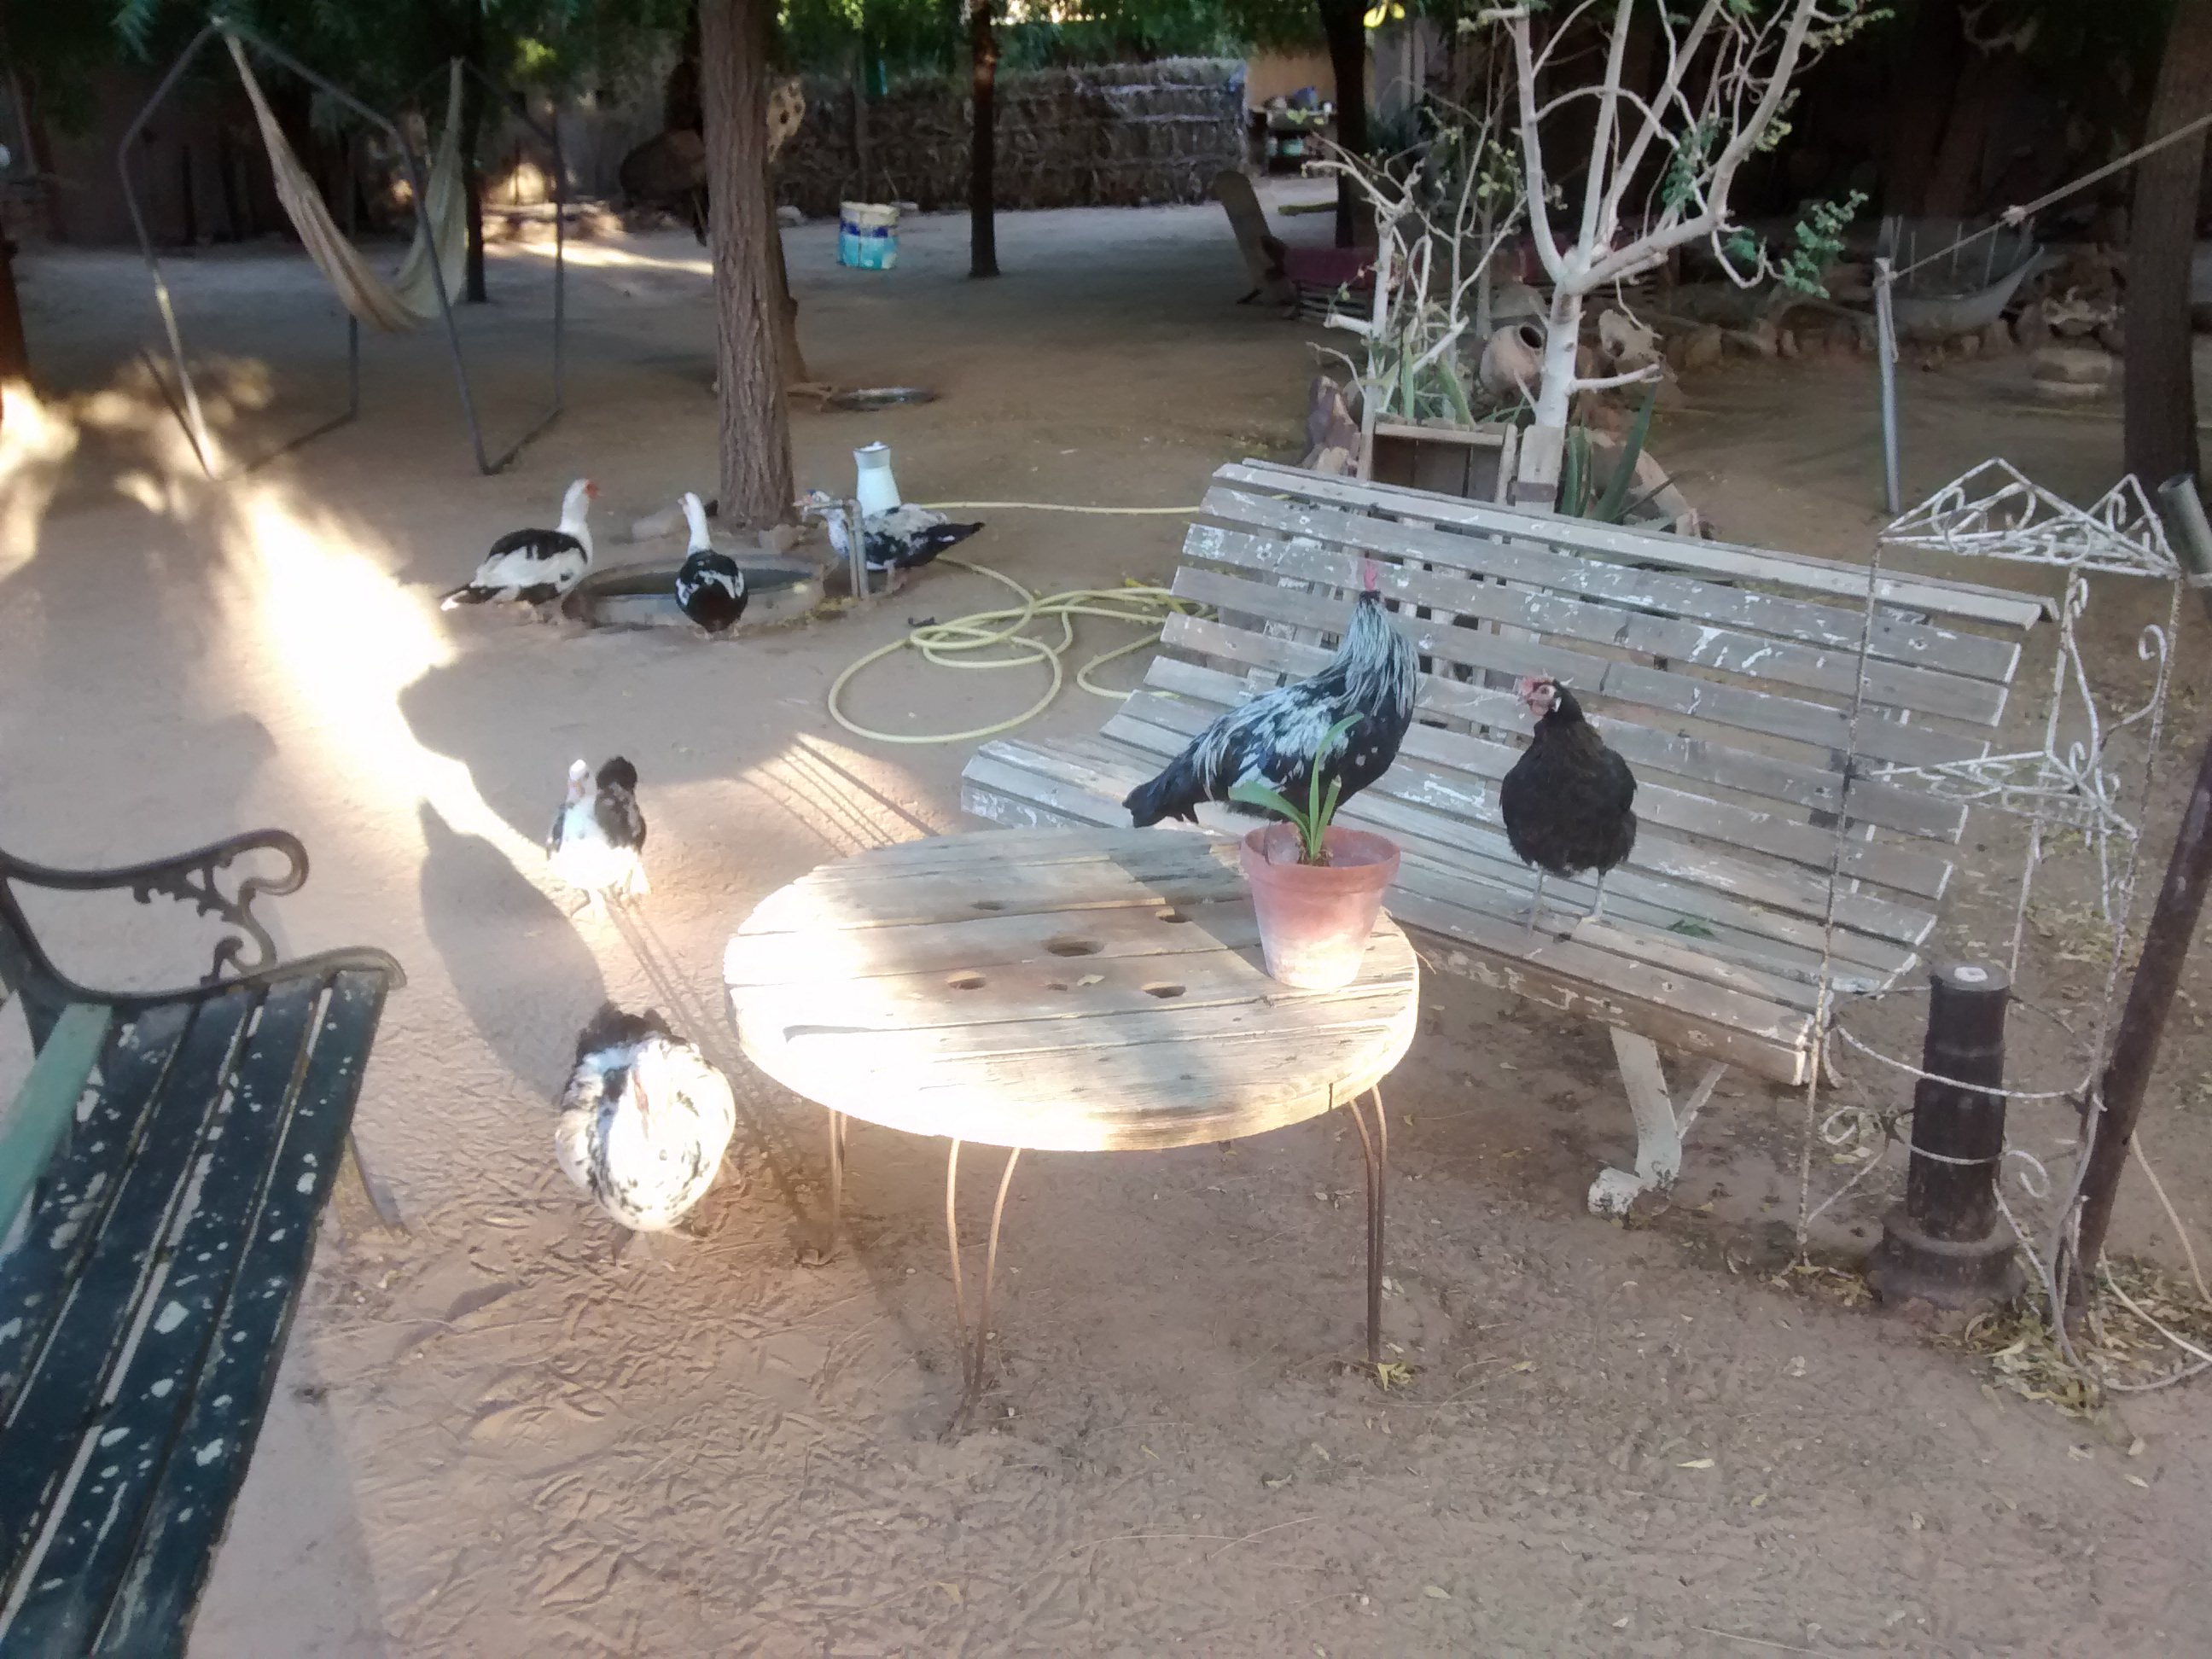 Resident ducks and chickens at auberge in Mauritania.